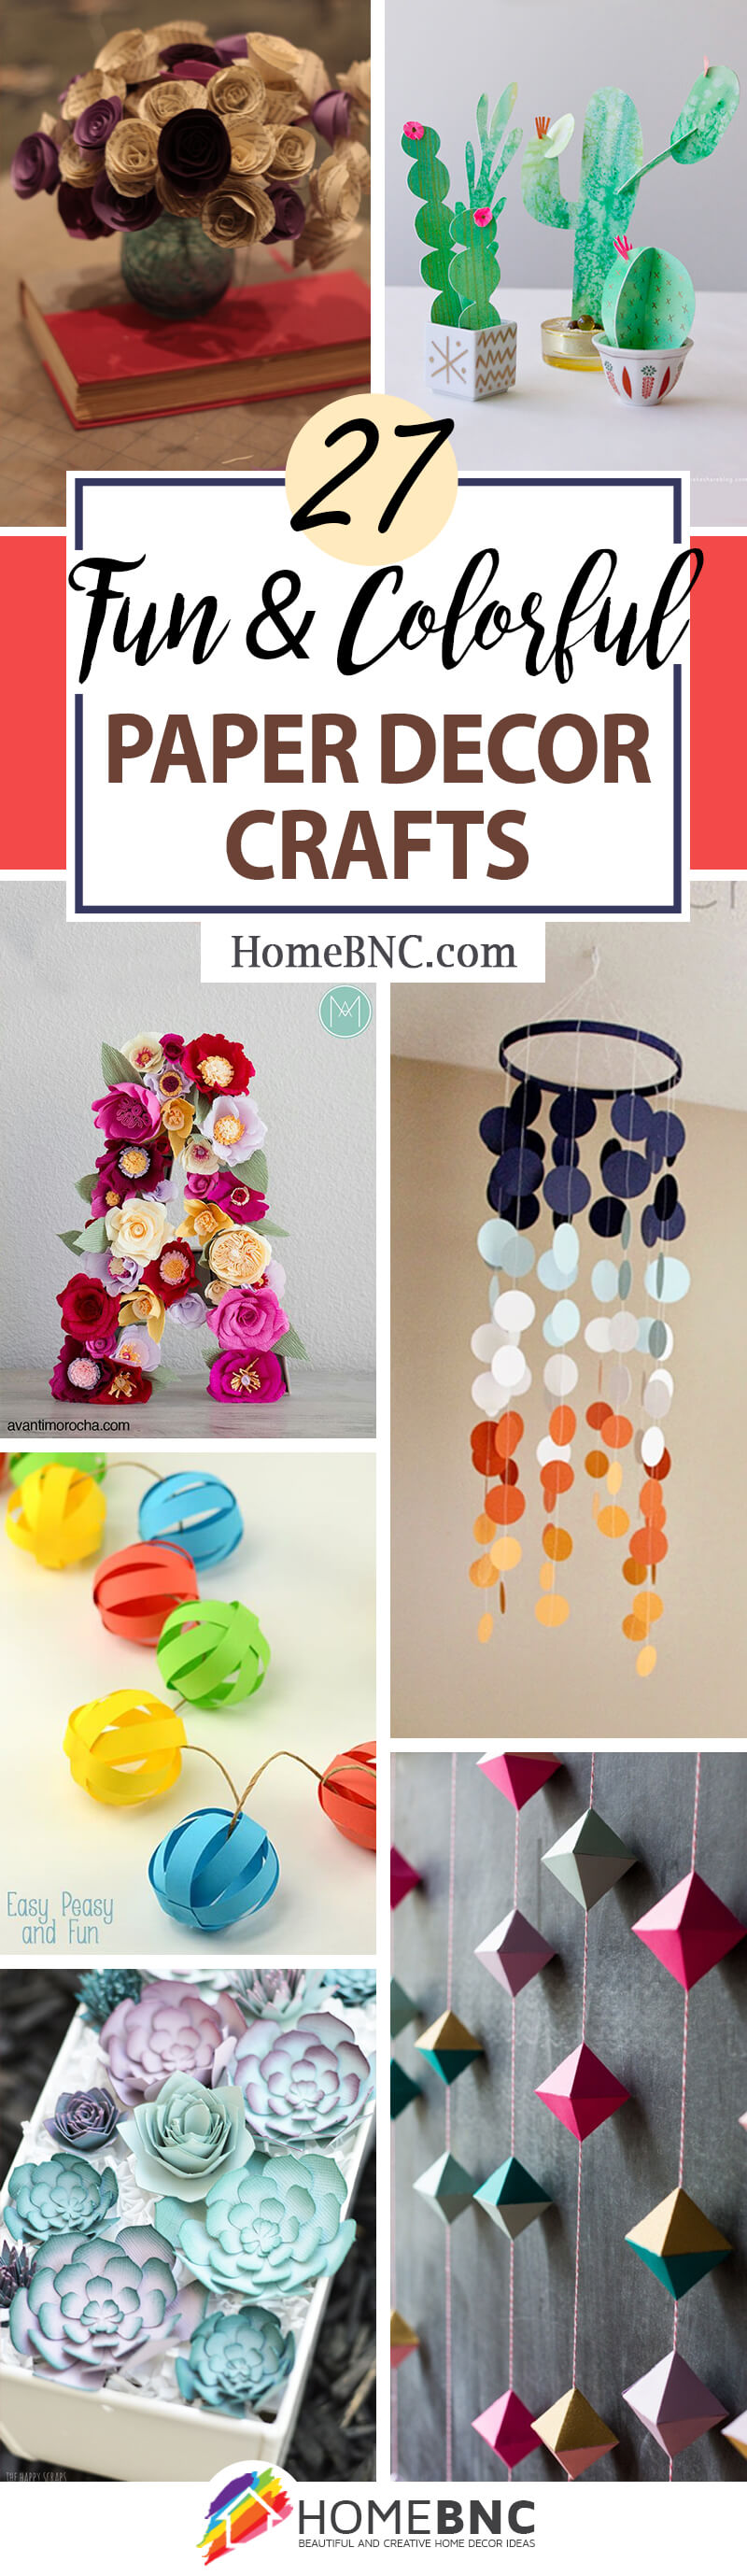 Art Decorating And Crafting 27 Best Paper Decor Crafts Ideas And Designs For 2019